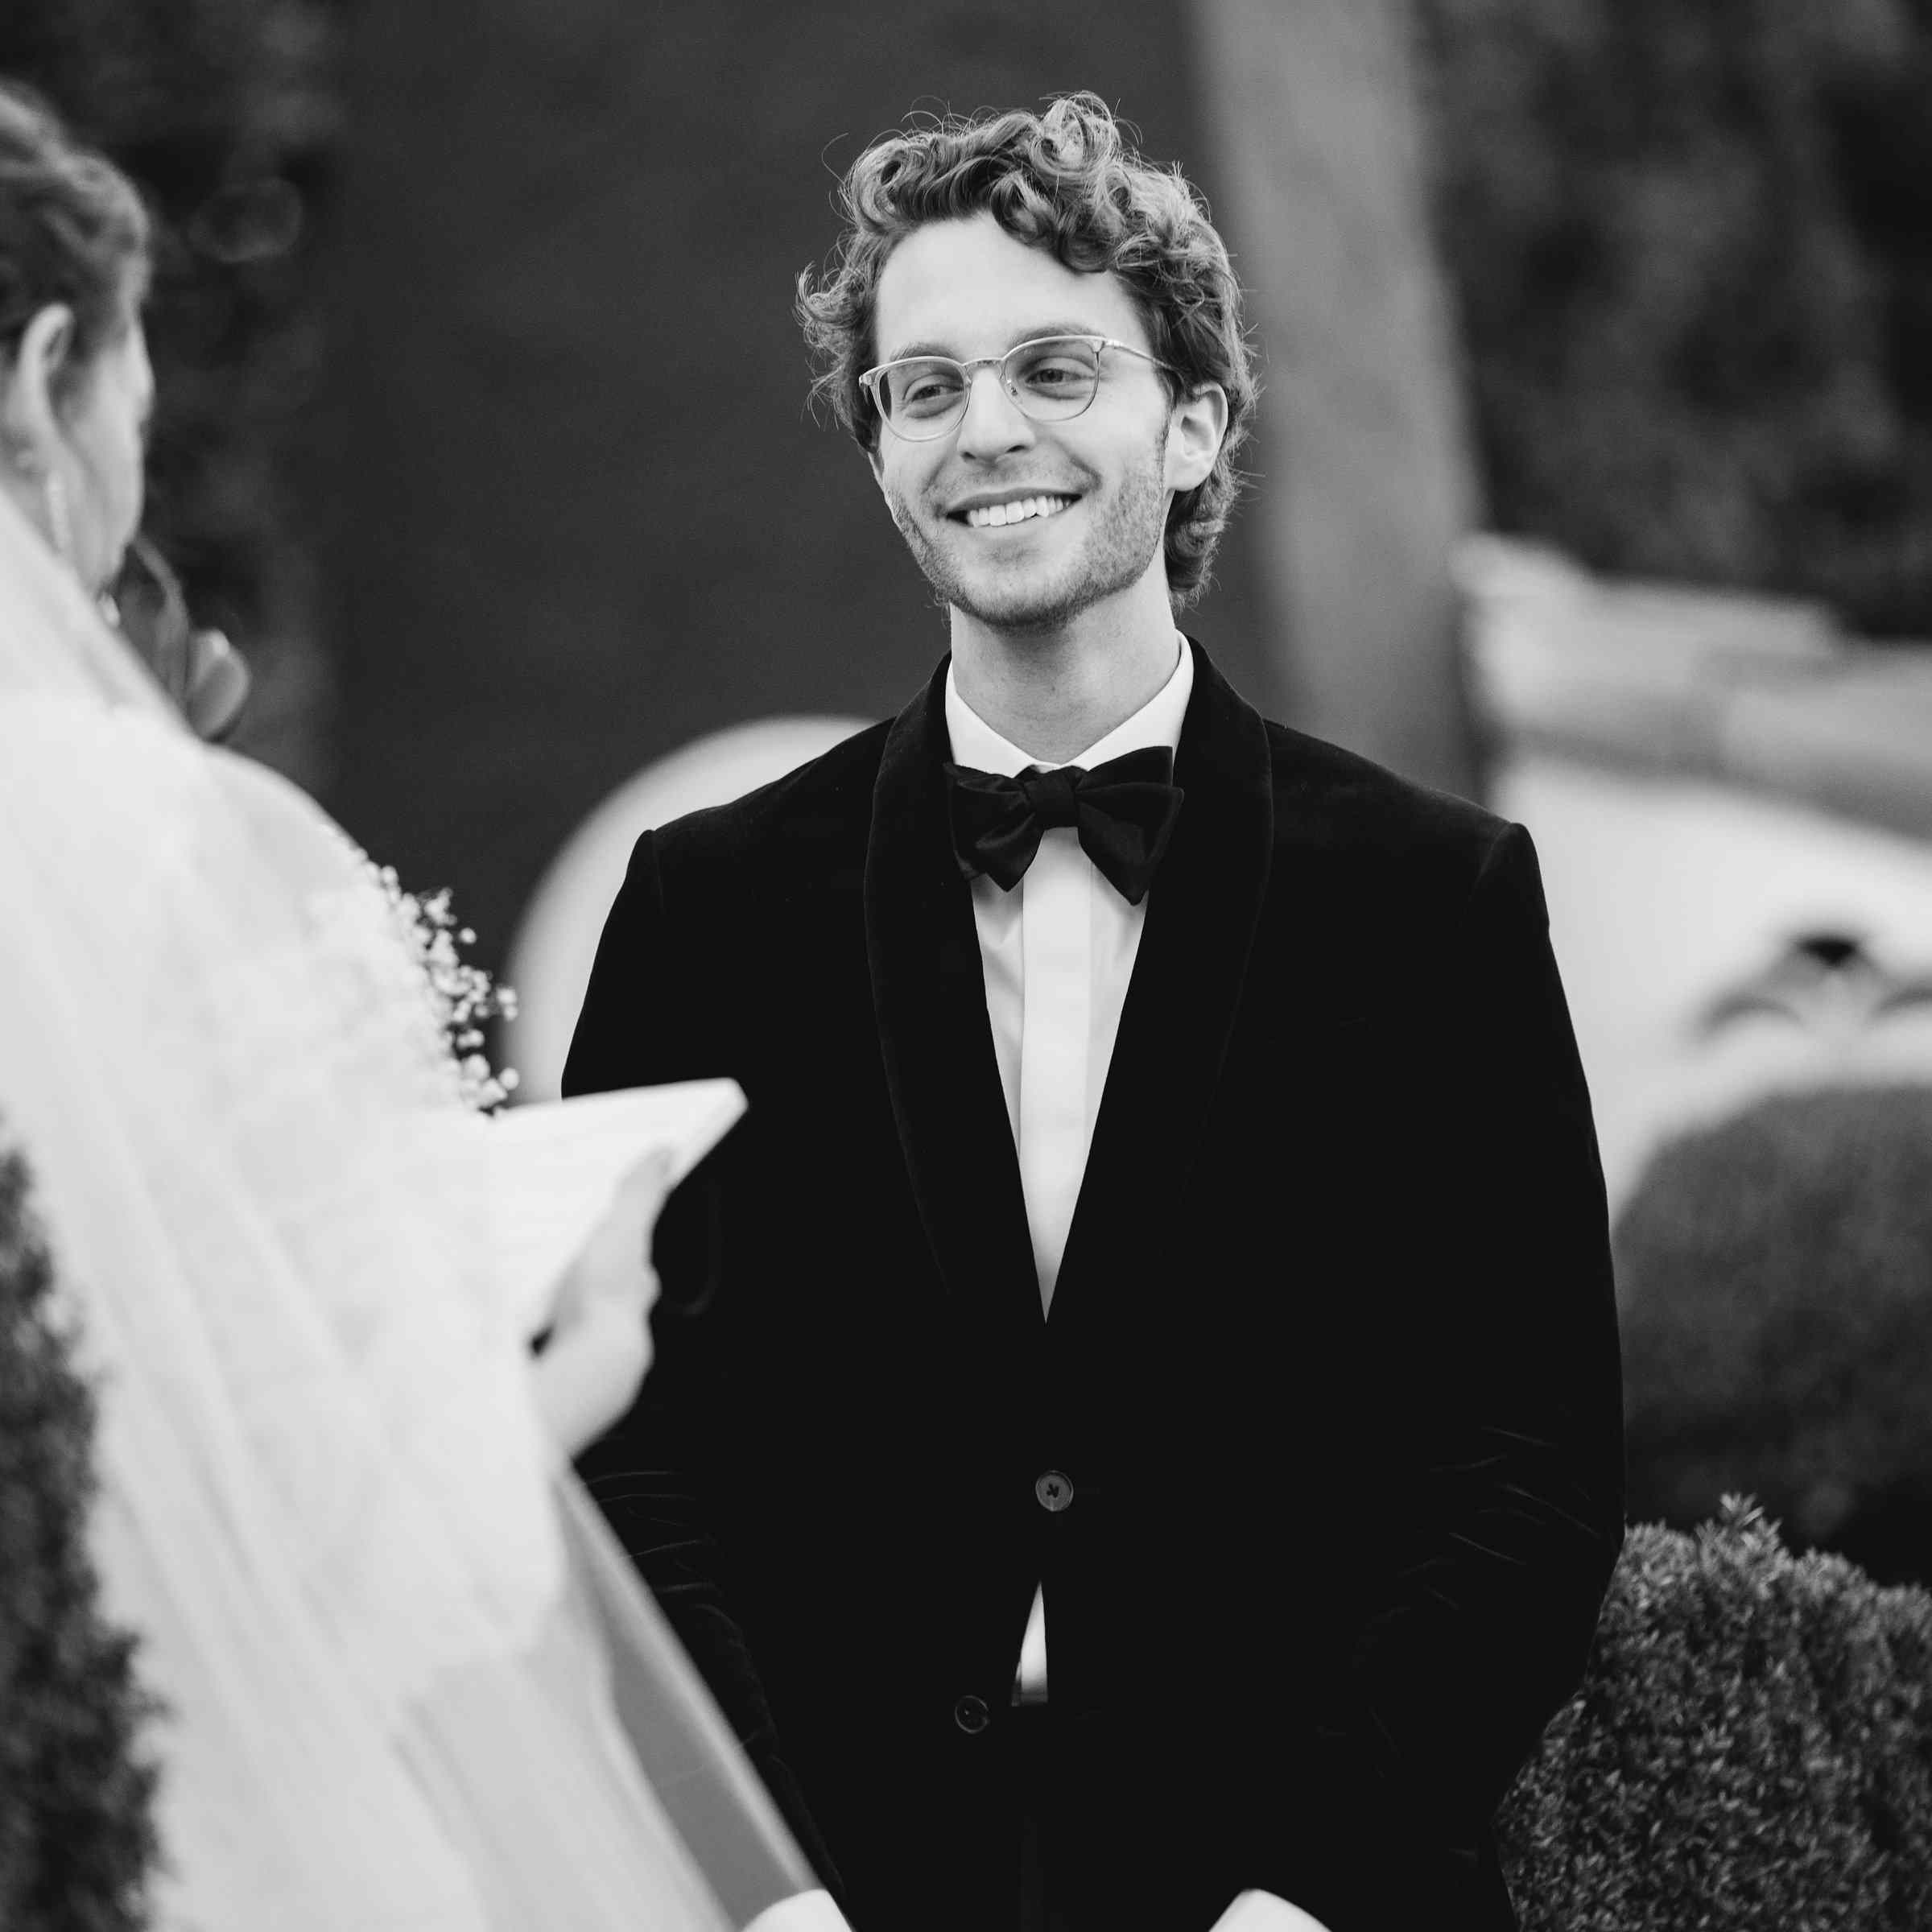 <p>smiling happy groom at altar</p><br><br>